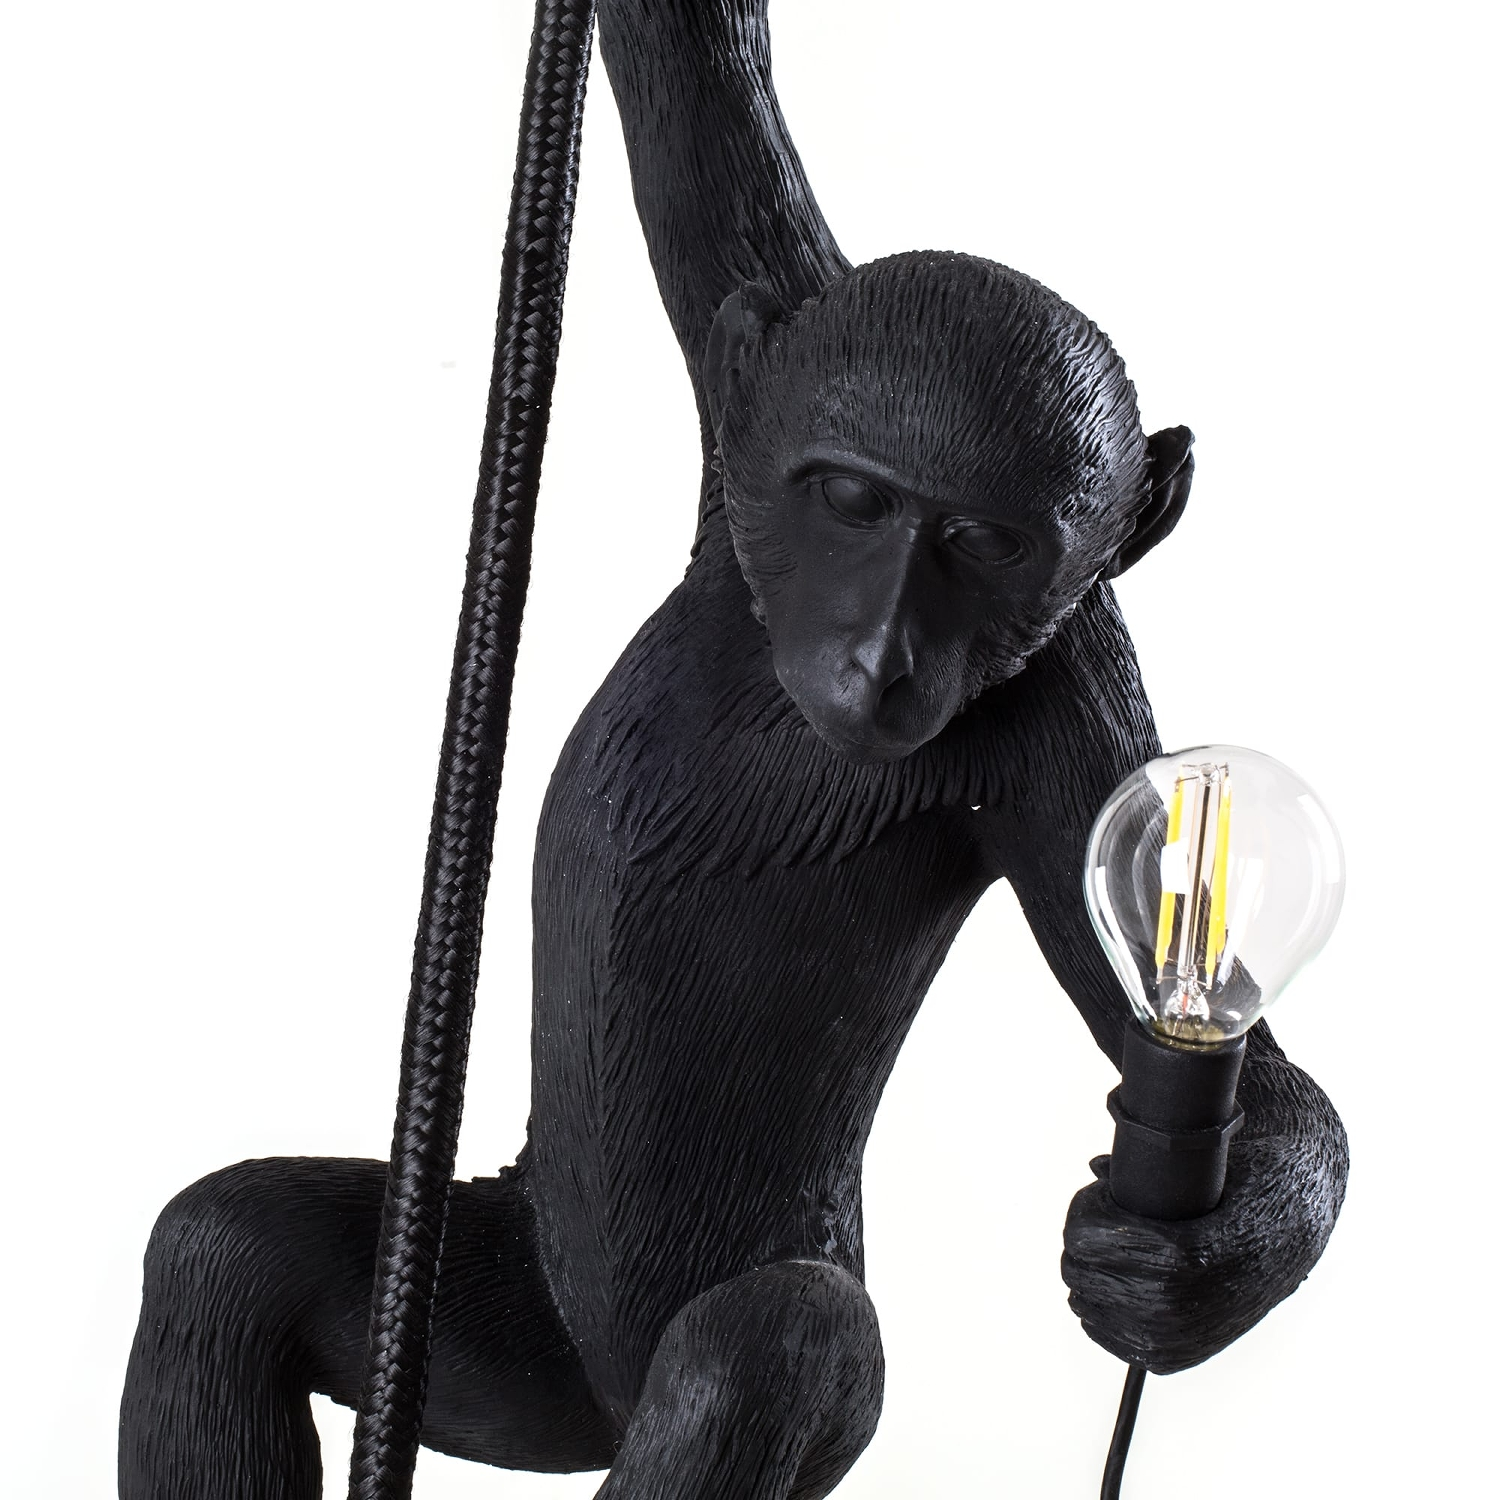 Monkey lamp, med rep, utomhus